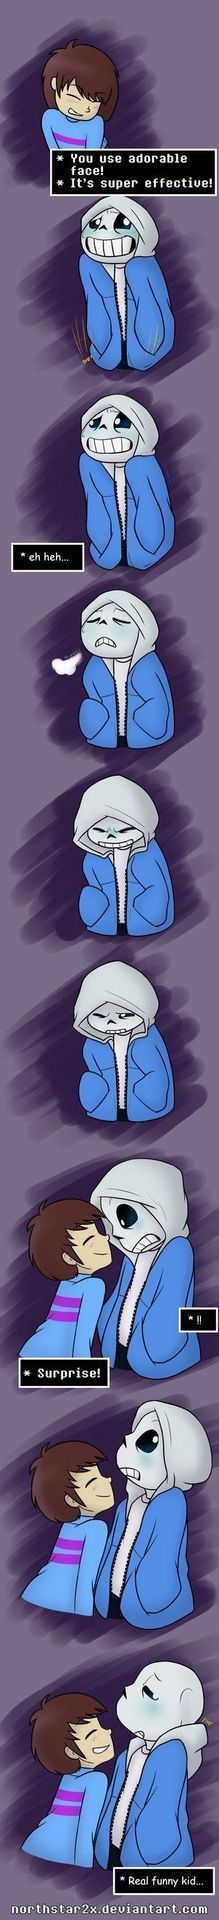 #wattpad #random These are just Pictures that I found of different Sans and Papyrus. I don't own any of the pictures. If there is a certain Sans or Papyrus you want me to post comment or message me. There will he sins so just be prepared.